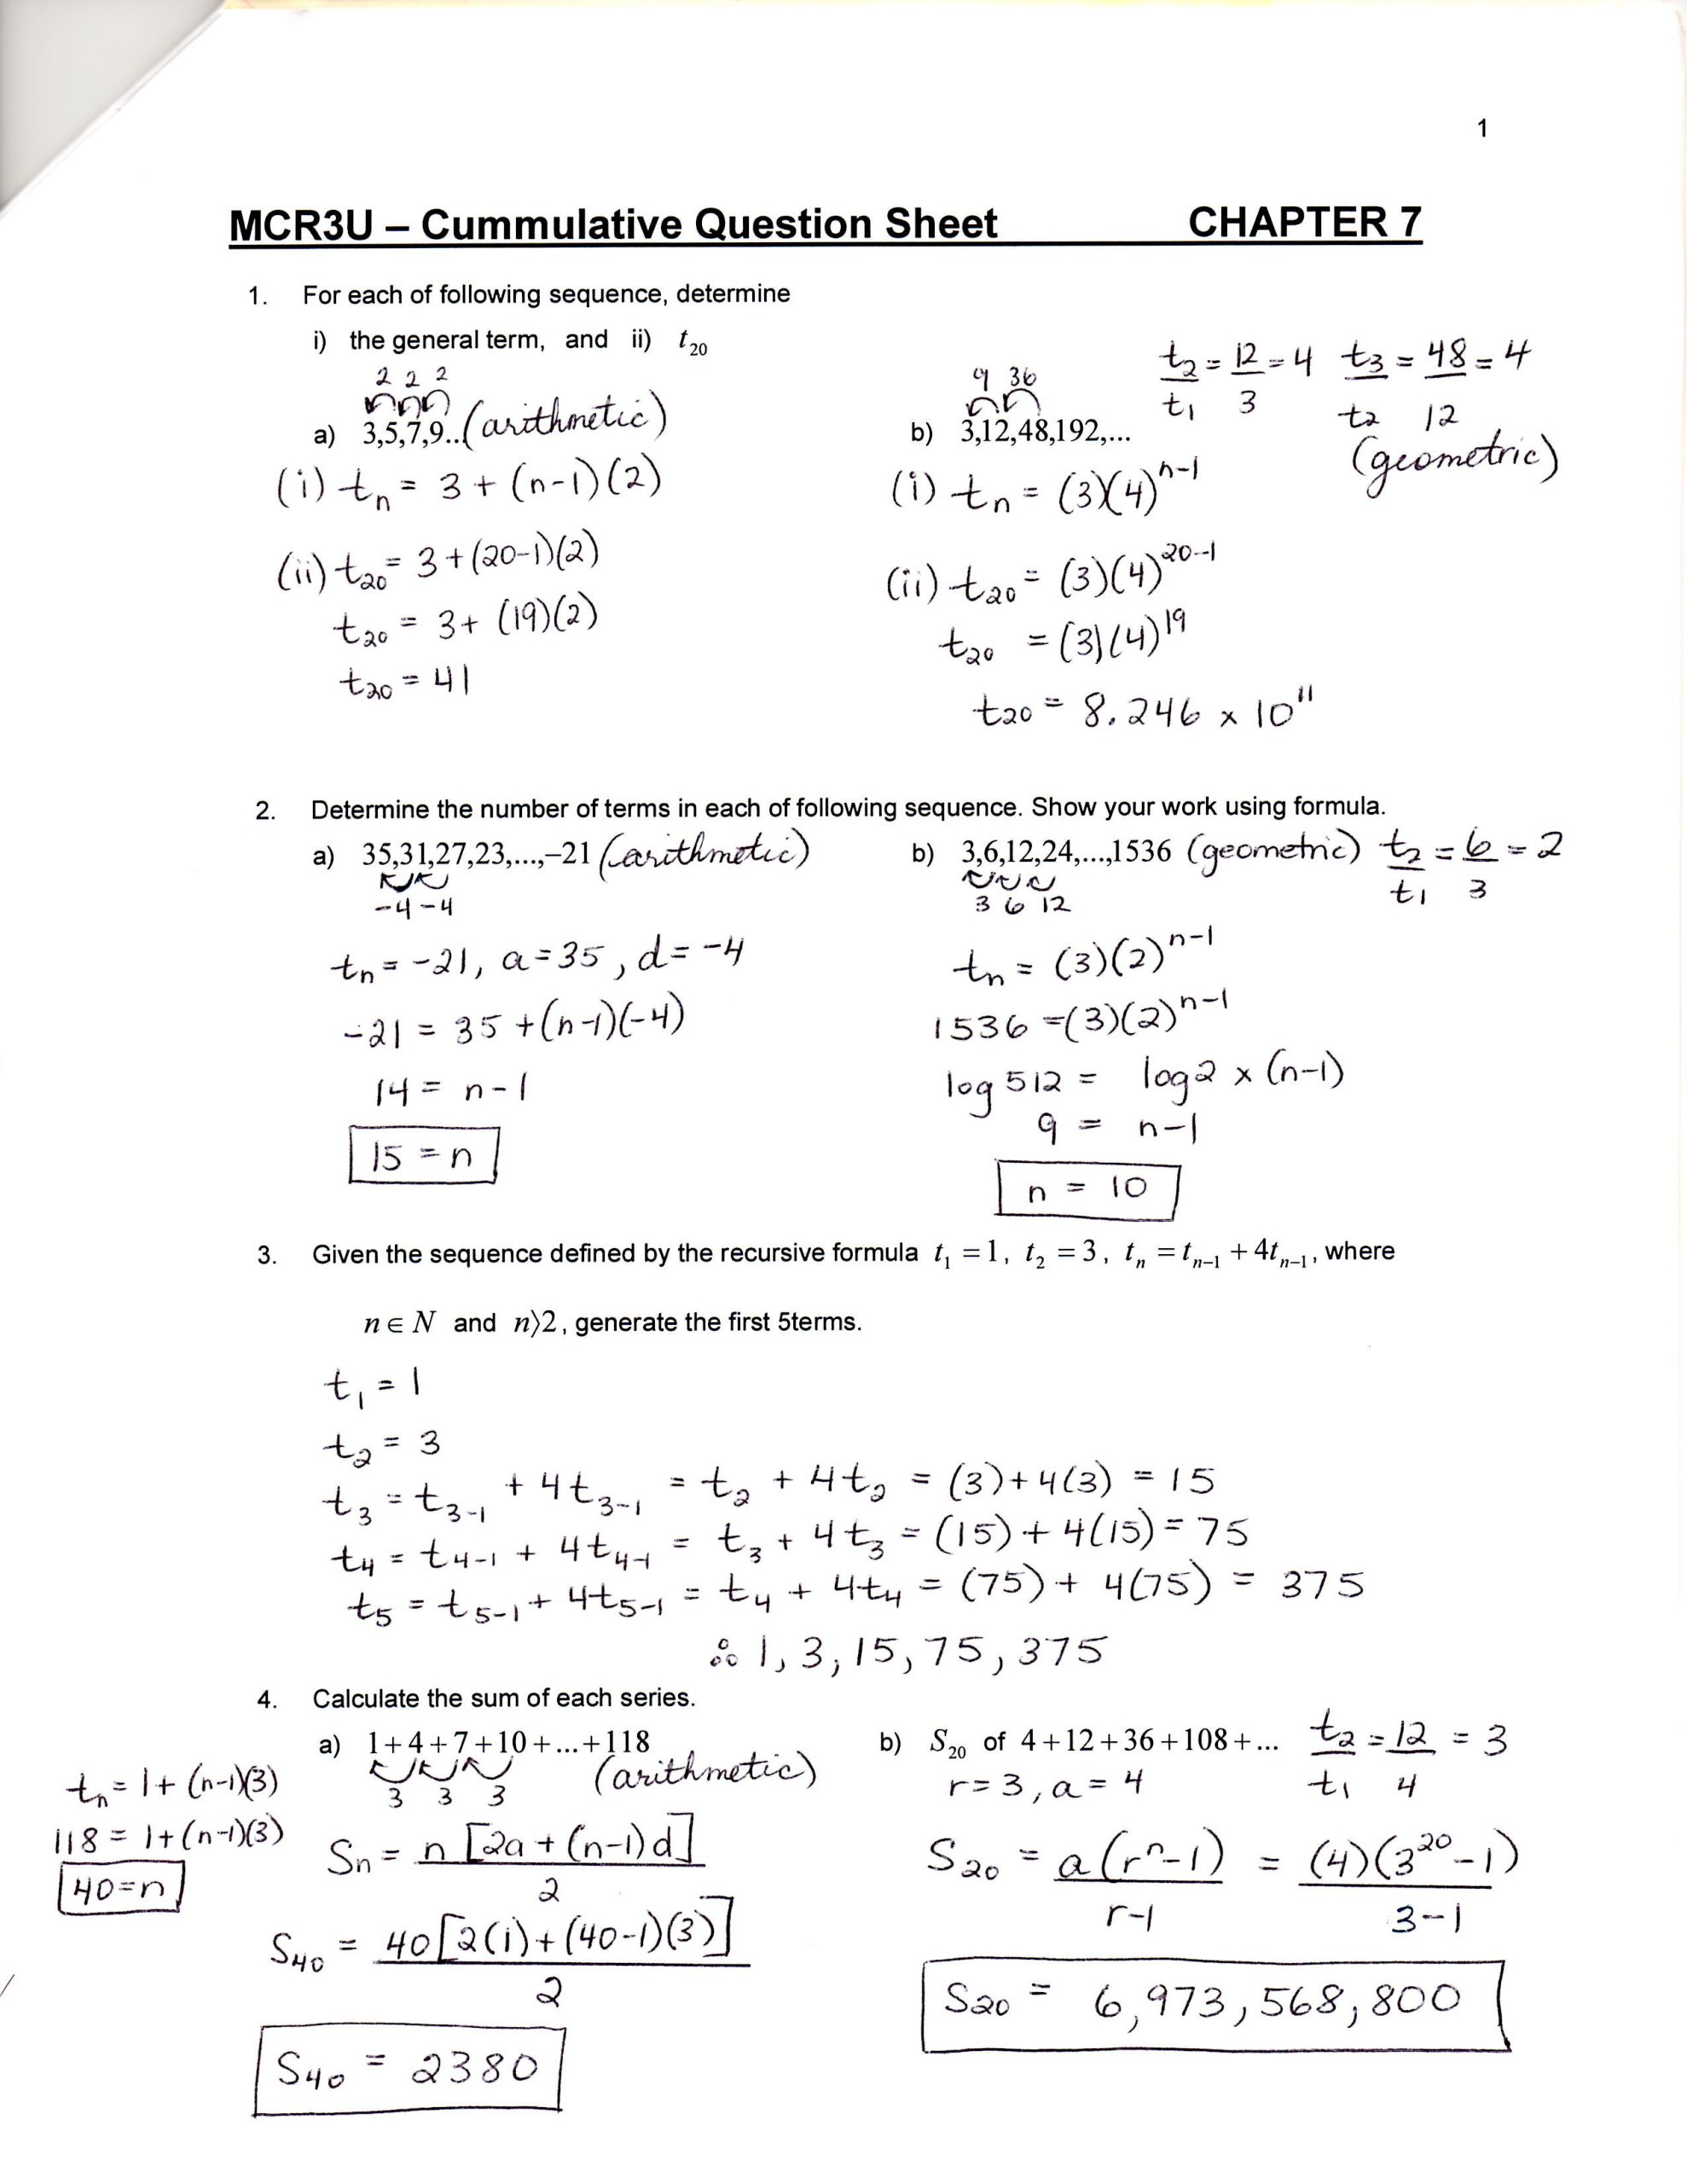 Sequences and Series Worksheet Answers Unit 7 & 8 Sequences Series and Financial Applications